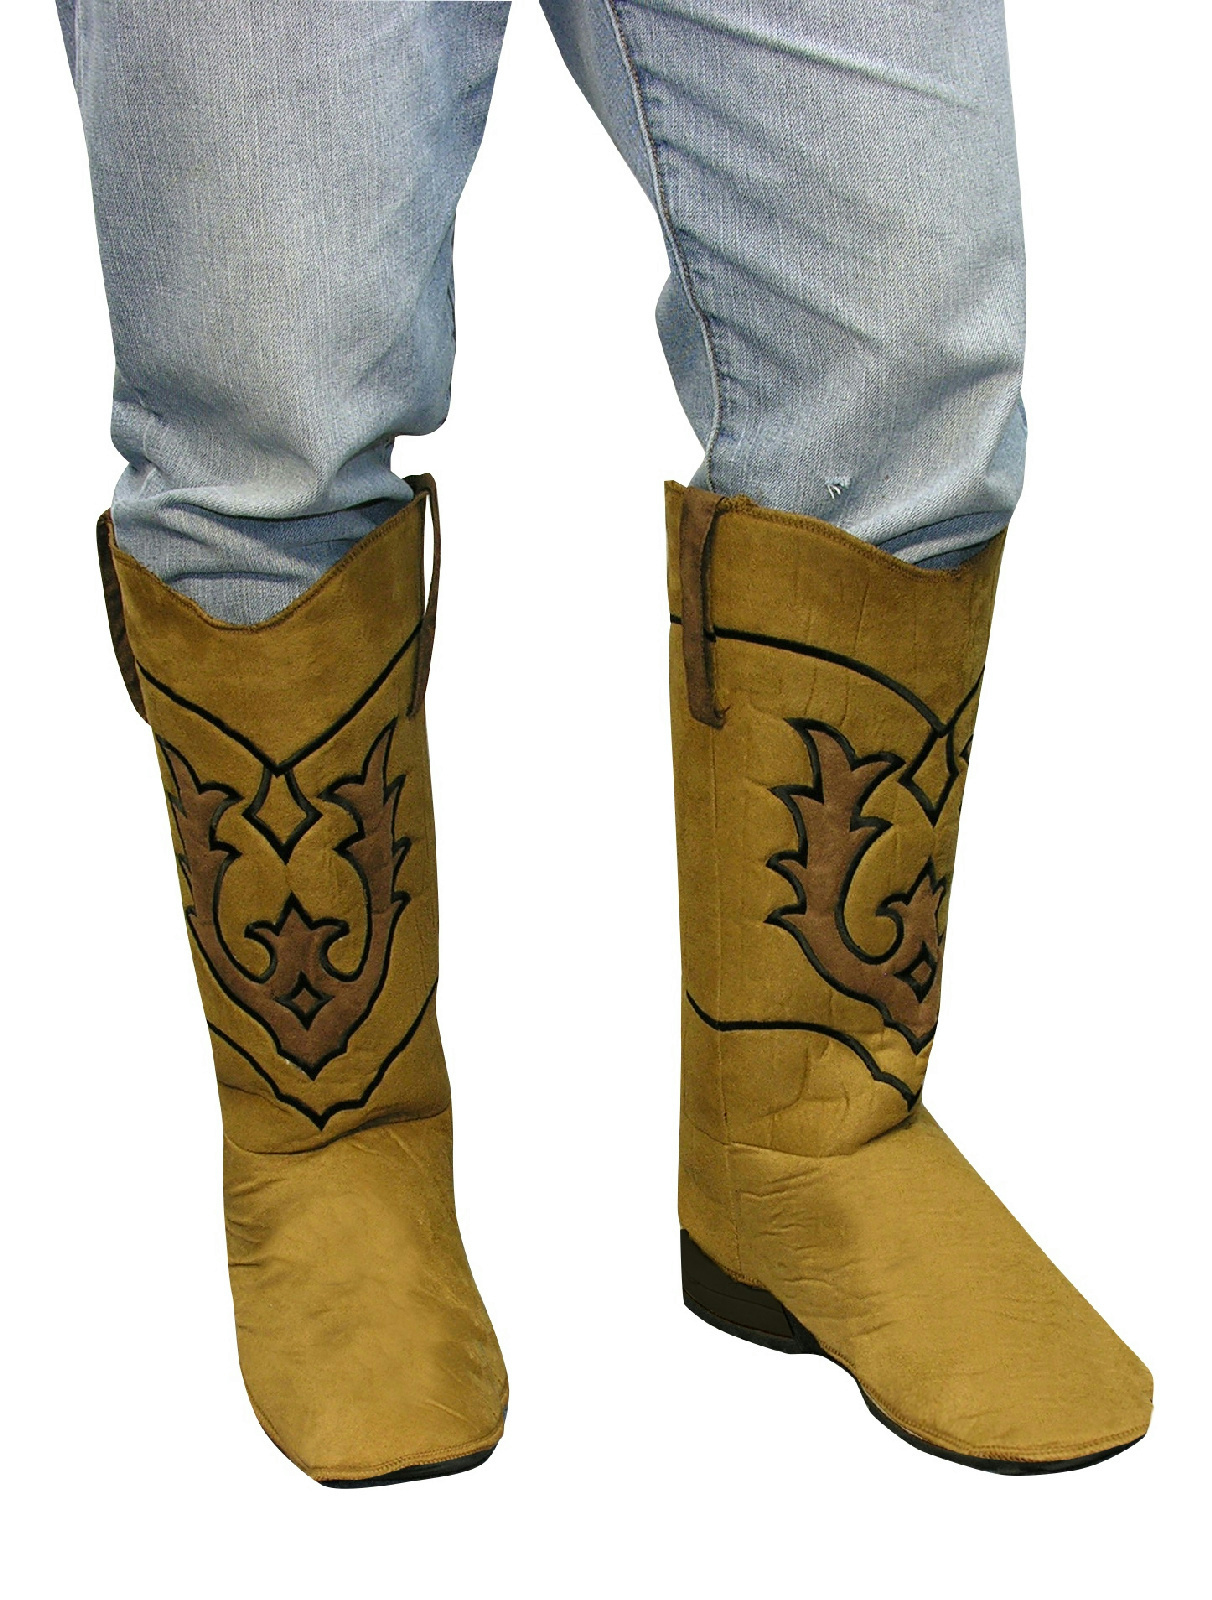 Cowboy Boot Top Covers Costume Accessory Ebay